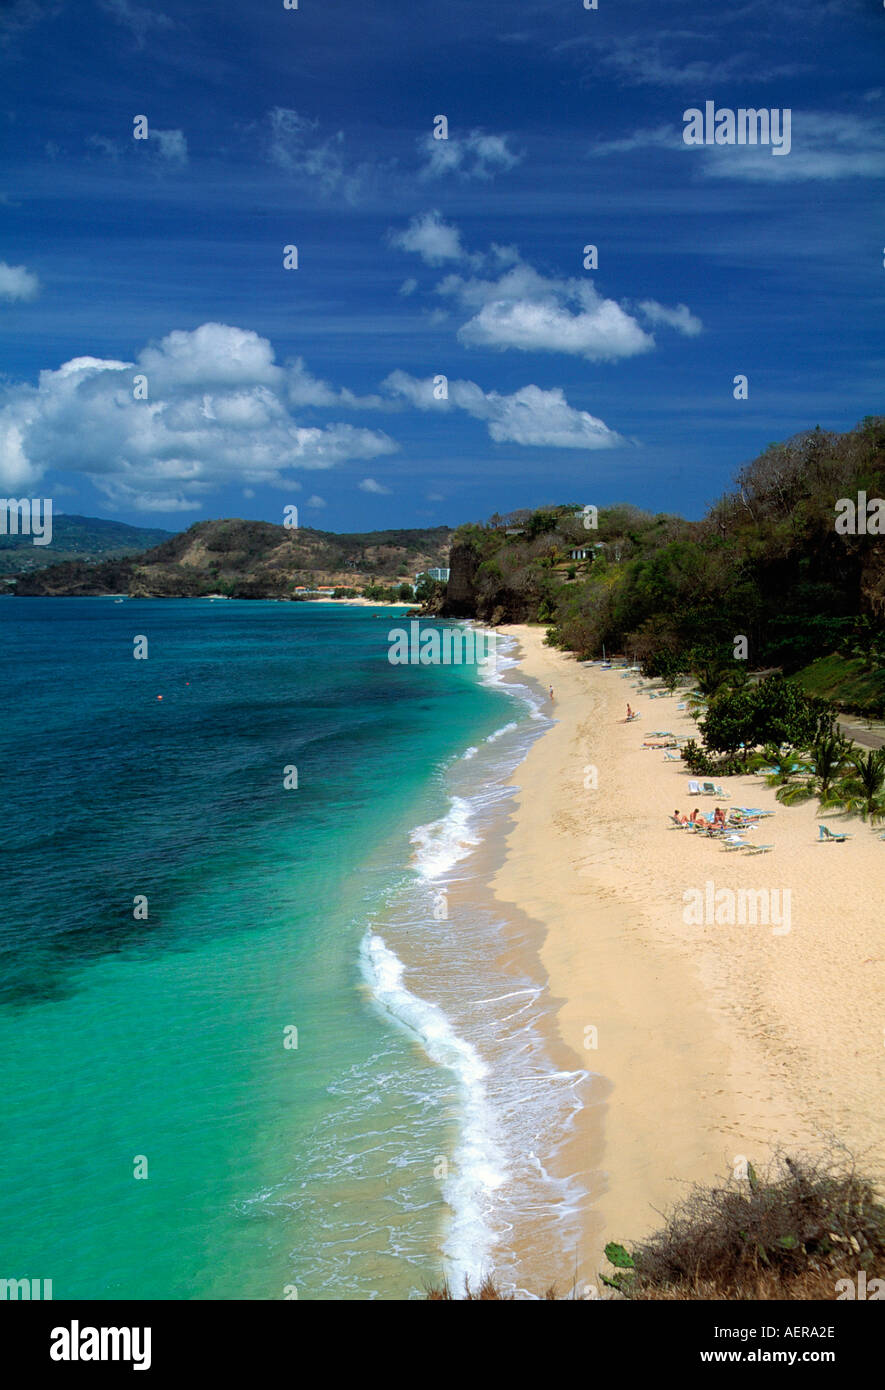 beach near hotel la source island of grenada archipelago of the lesser antilles caribbean - Stock Image